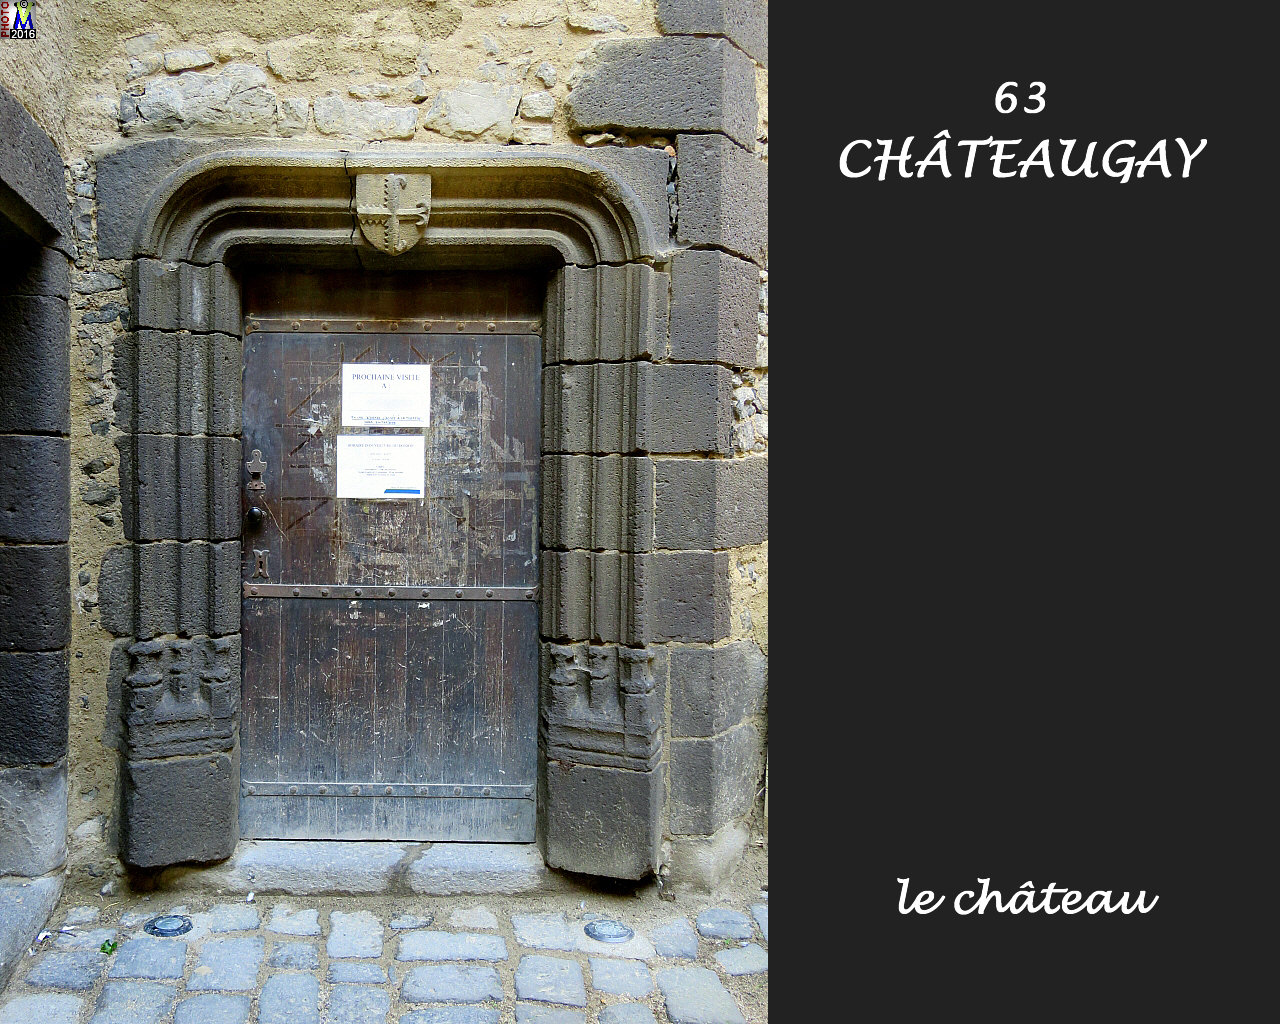 63CHATEAUGAY_chateau_114.jpg